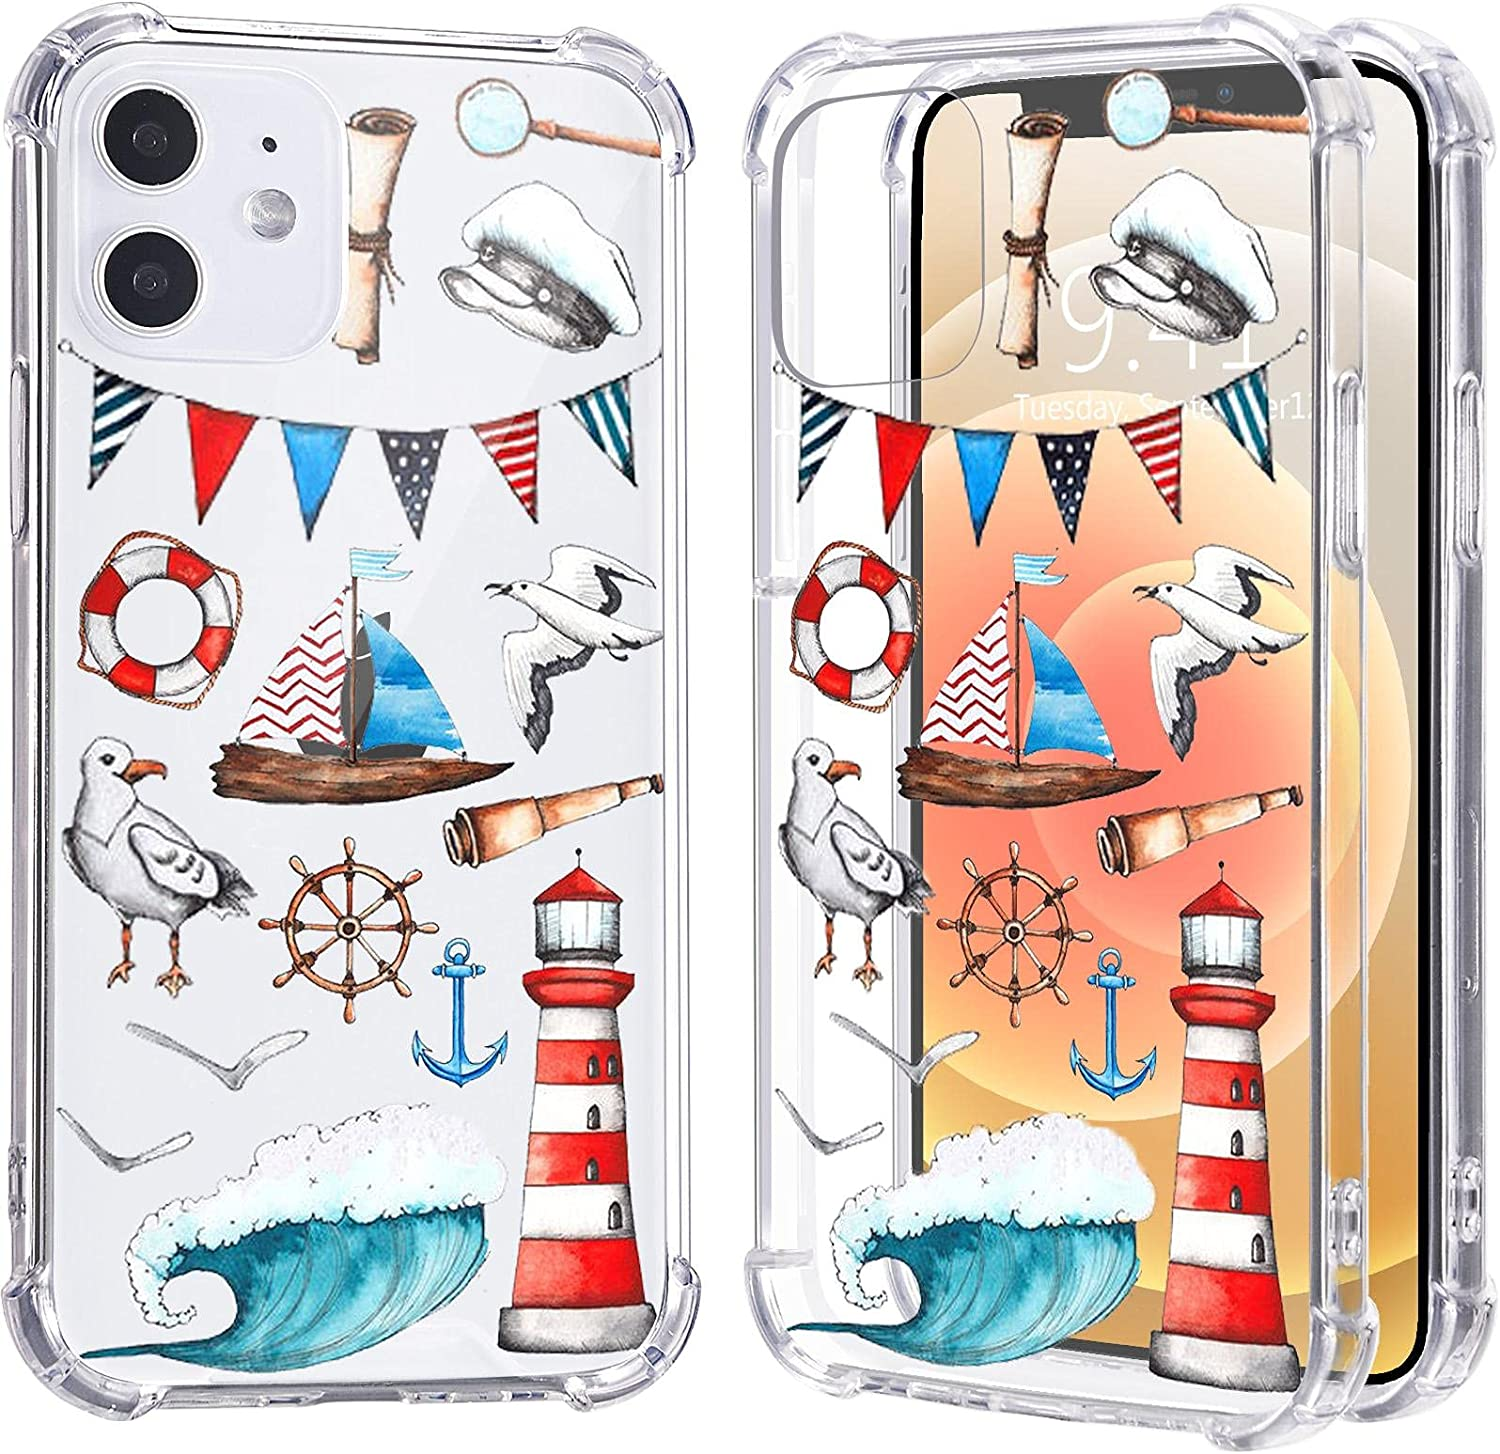 LuGeKe Anchor Case for iPhone 6/6S,Sailing Boat Pattern Clear Soft TPU Flexible Full-Body Airbag Shockproof Case Cover for Girls Women,Transparent Anti-Scratch Bumper Protection Phone Case